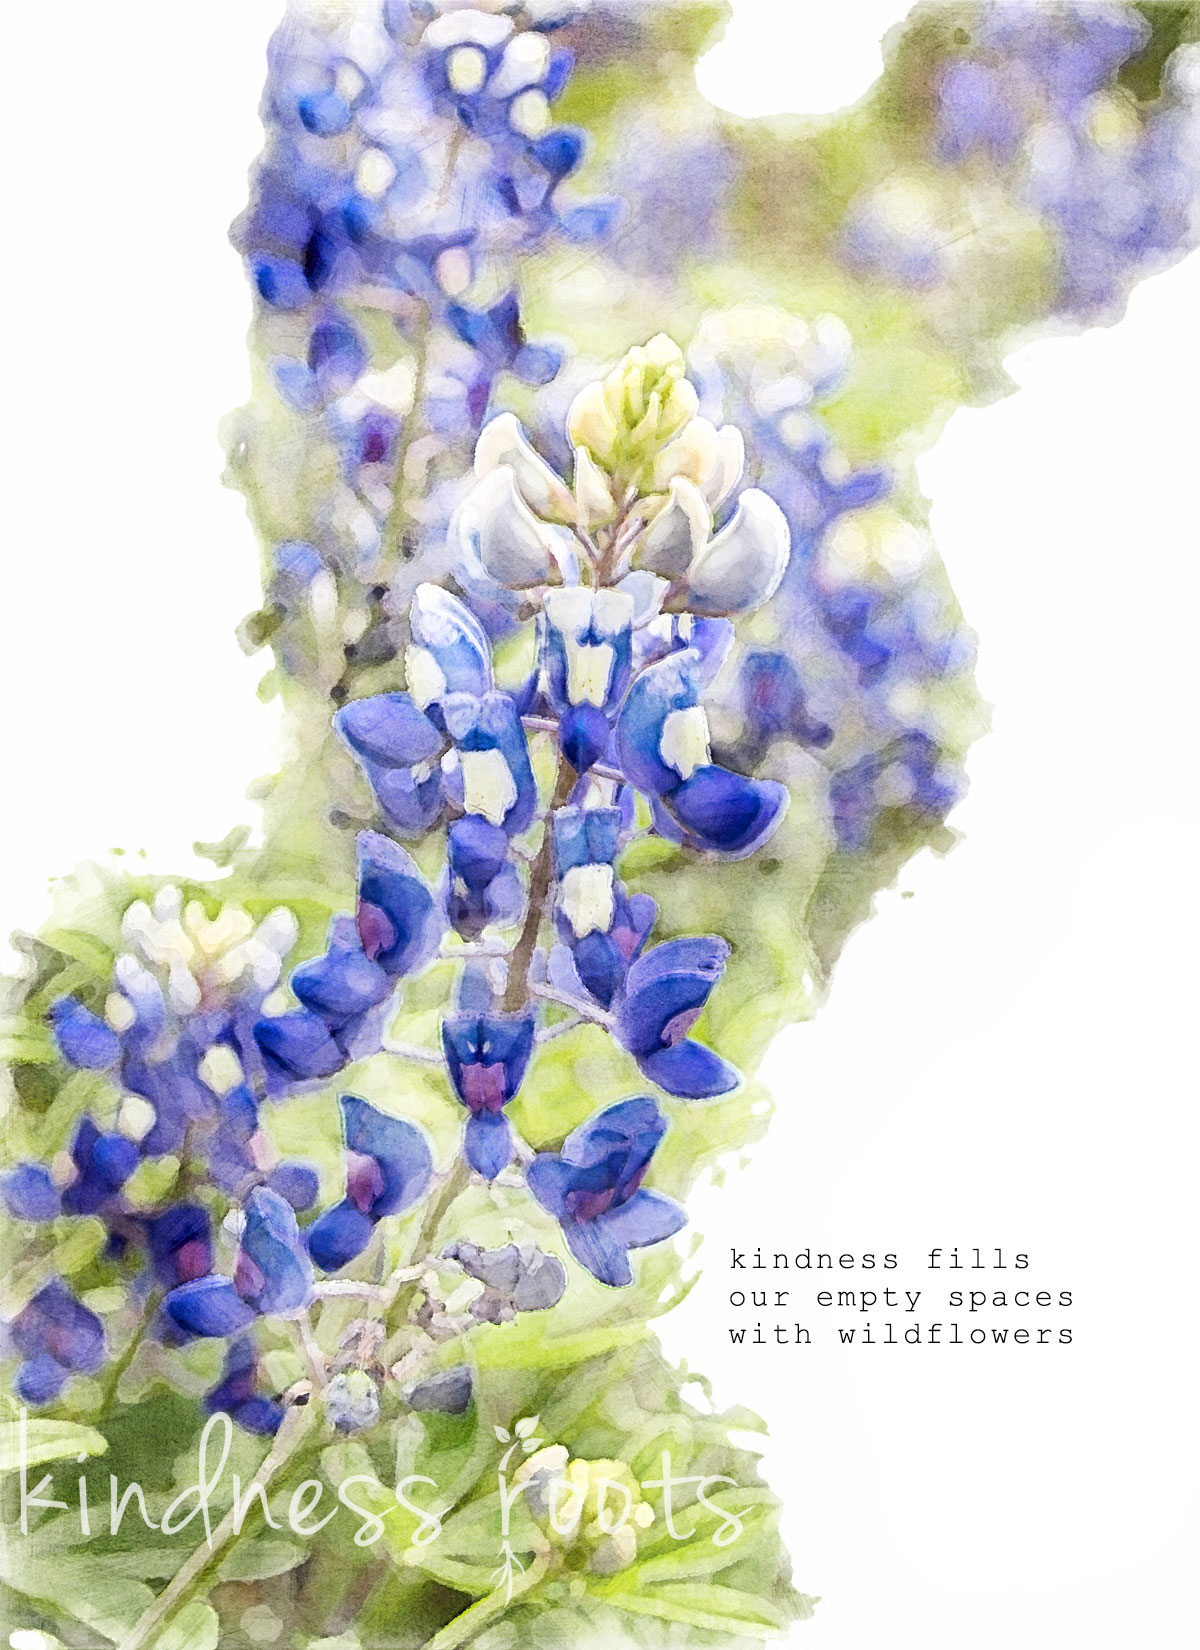 """Kindness Roots gratitude card cover with bluebonnets and kindness quote, """"Kindness fills our empty spaces with wildflowers"""""""